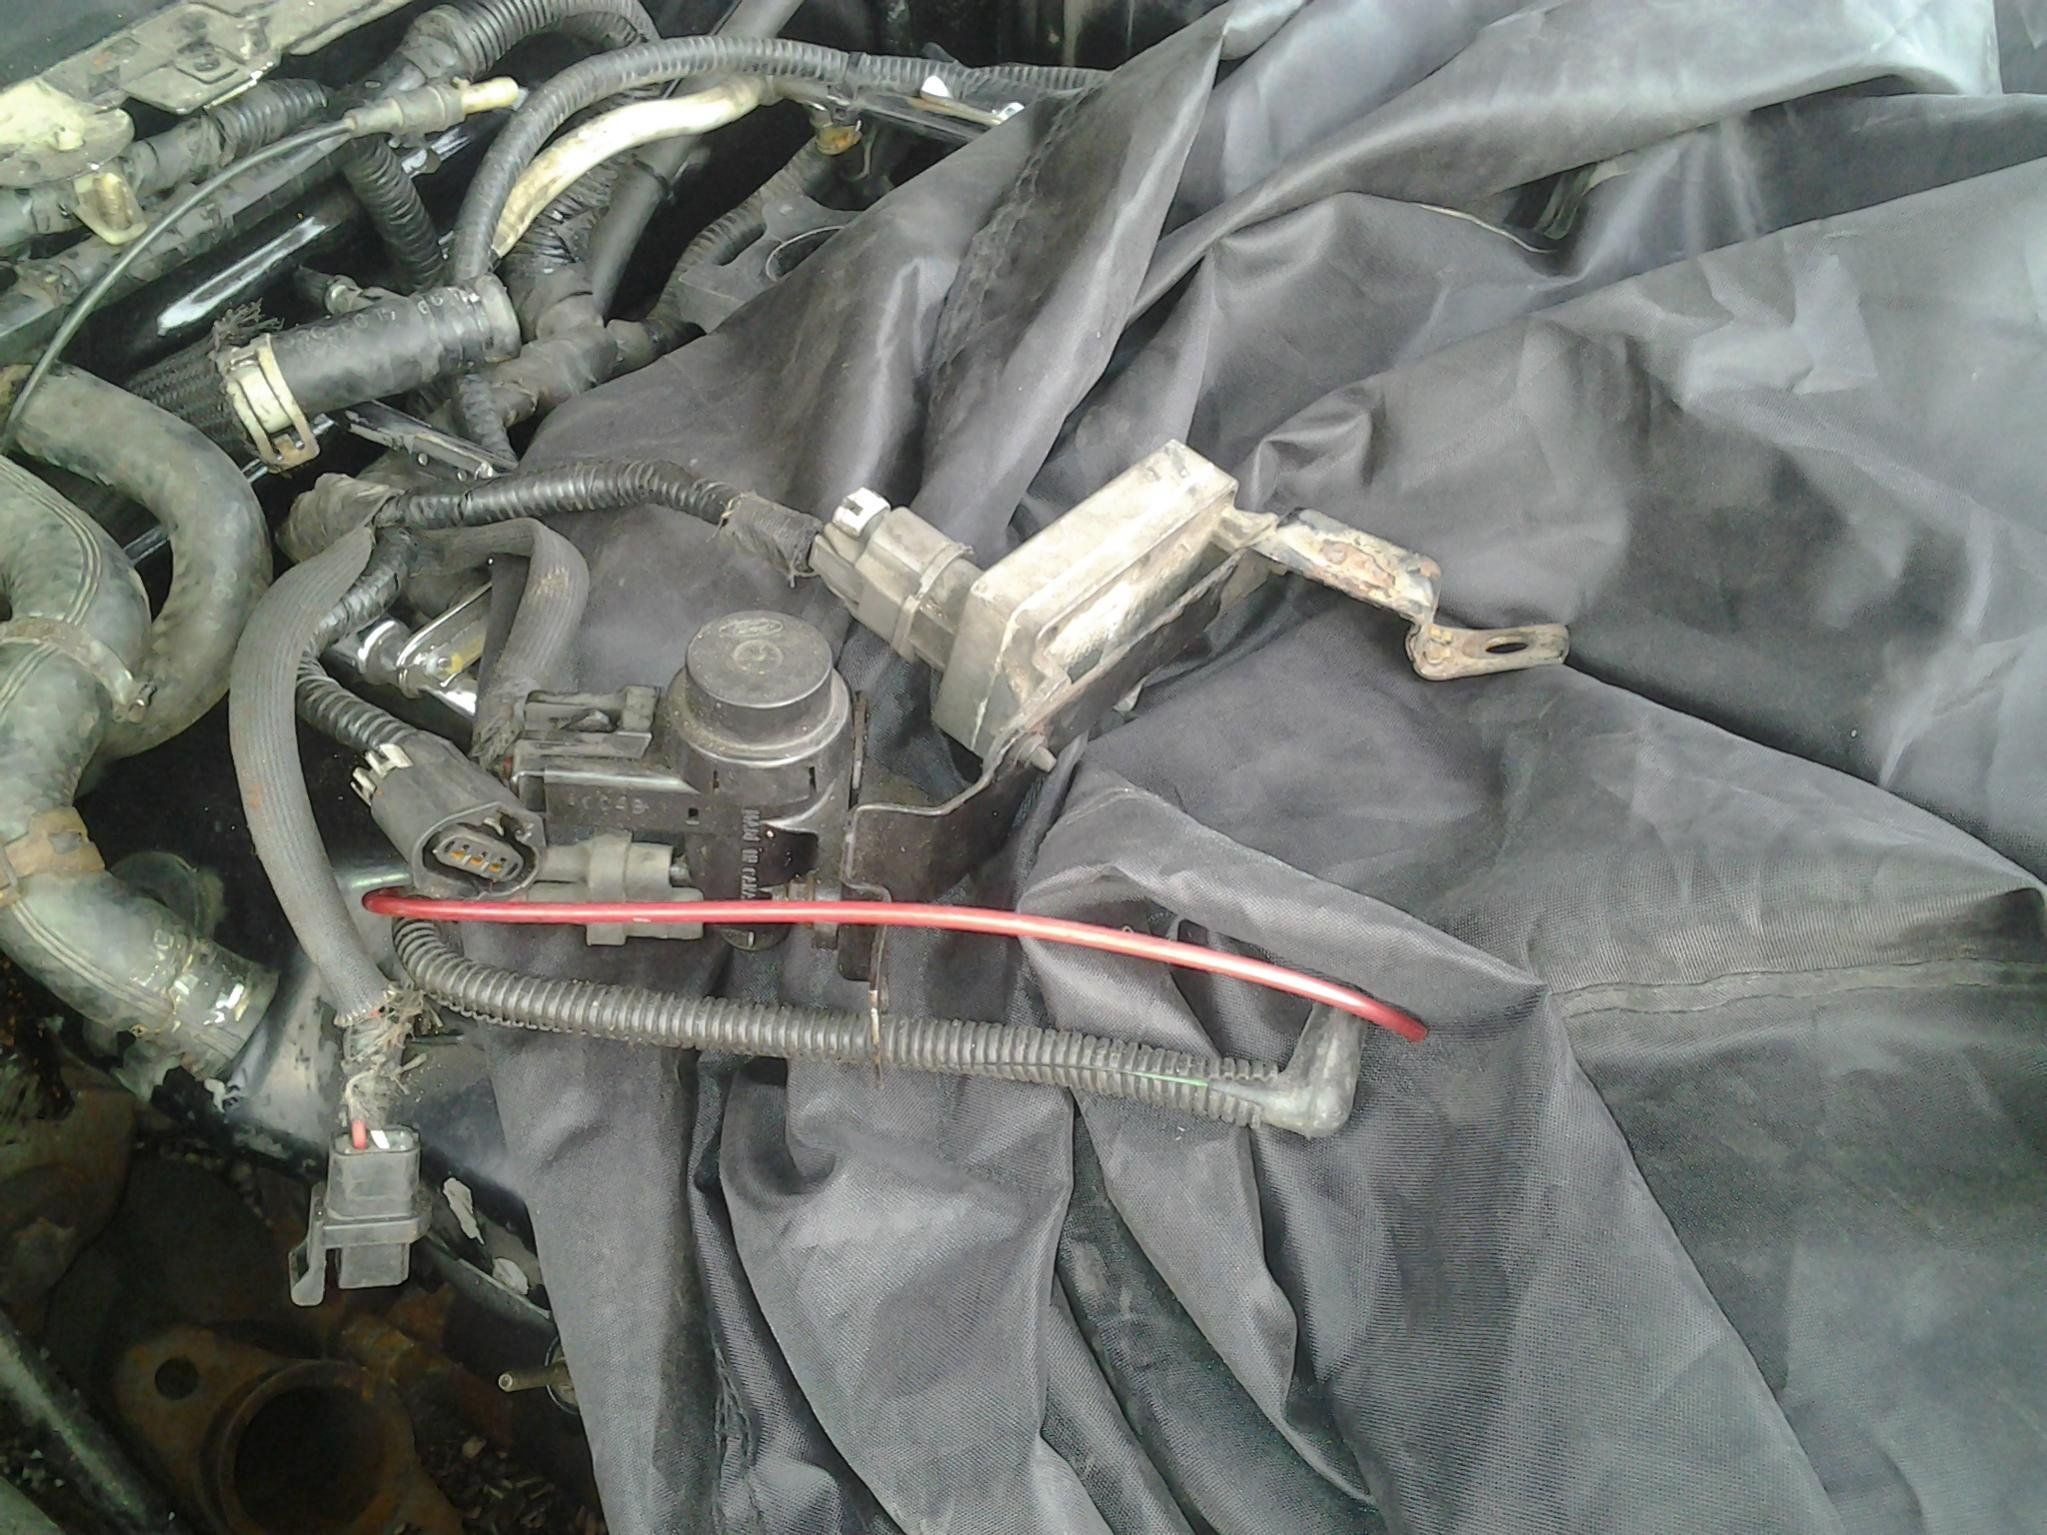 94 mustang 3.8 wiring harness locations? drove nuts!! what plugs are for what??-20120704_195403.jpg